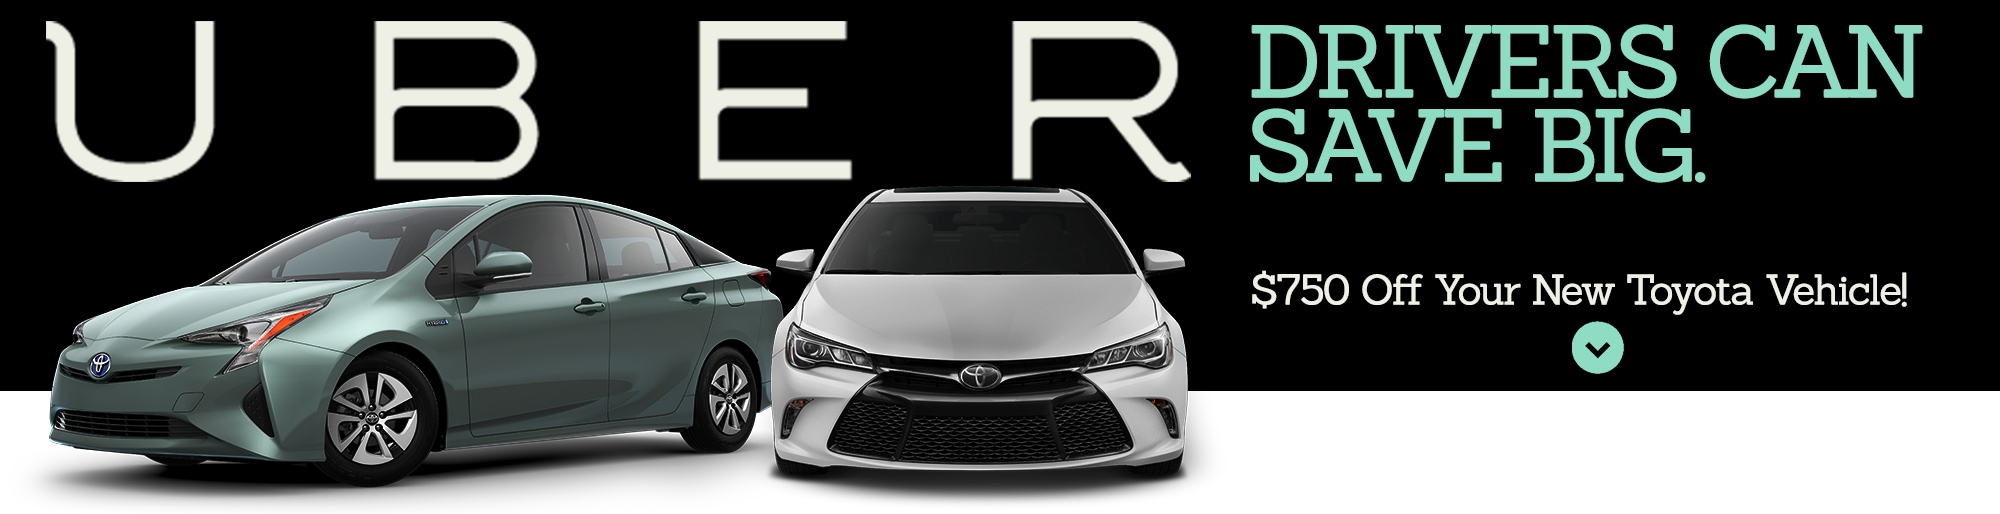 We are happy to announce the collaboration with uber technologies inc eligible uber drivers can now earn 750 off a purchase of a new toyota vehicle